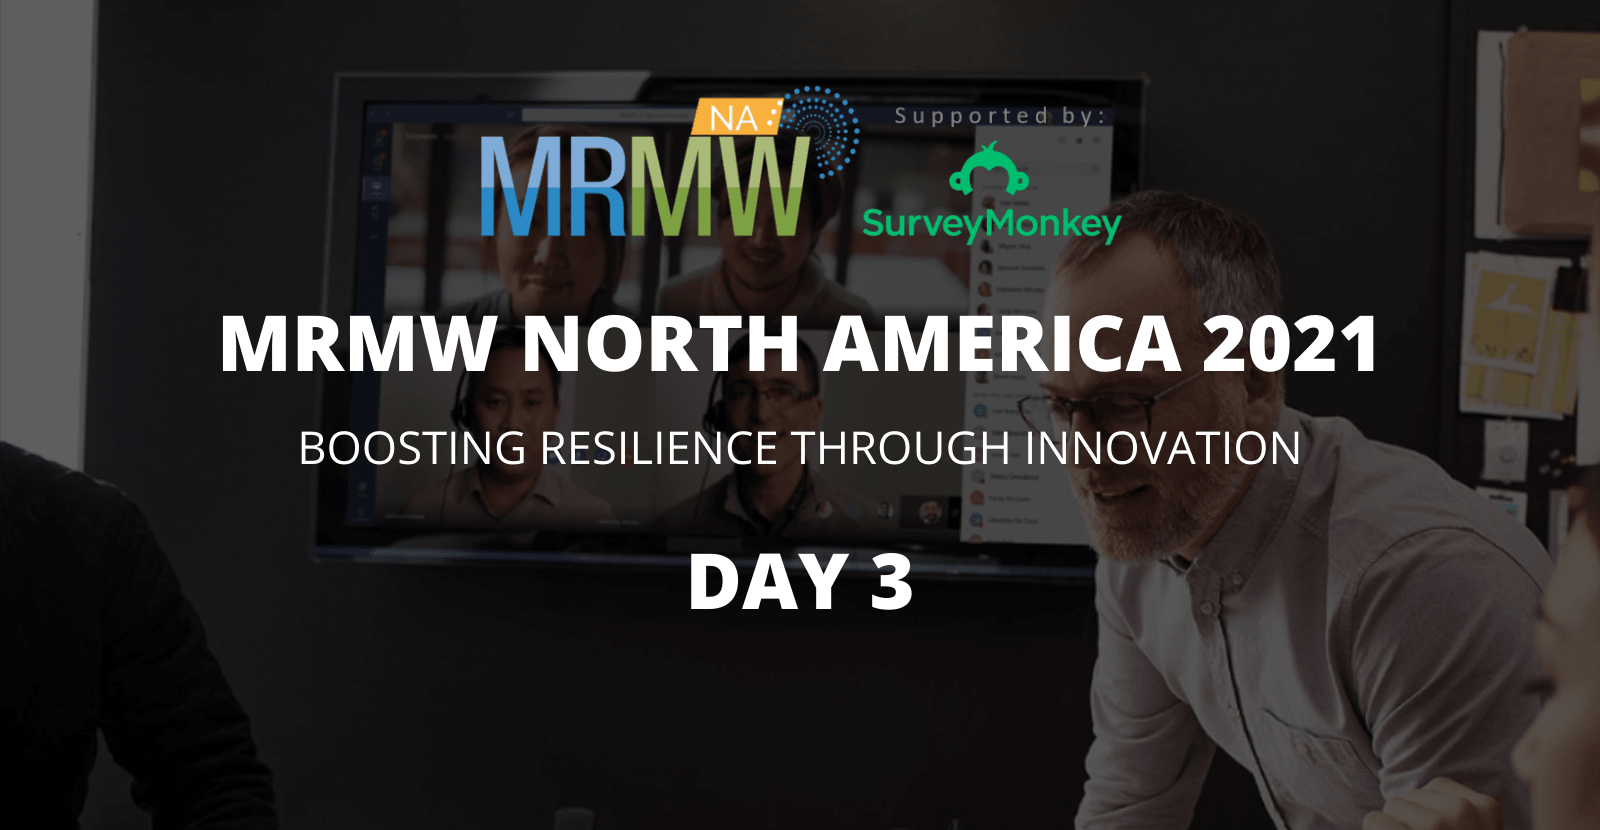 MRMW 2021 - Notes on Day 3